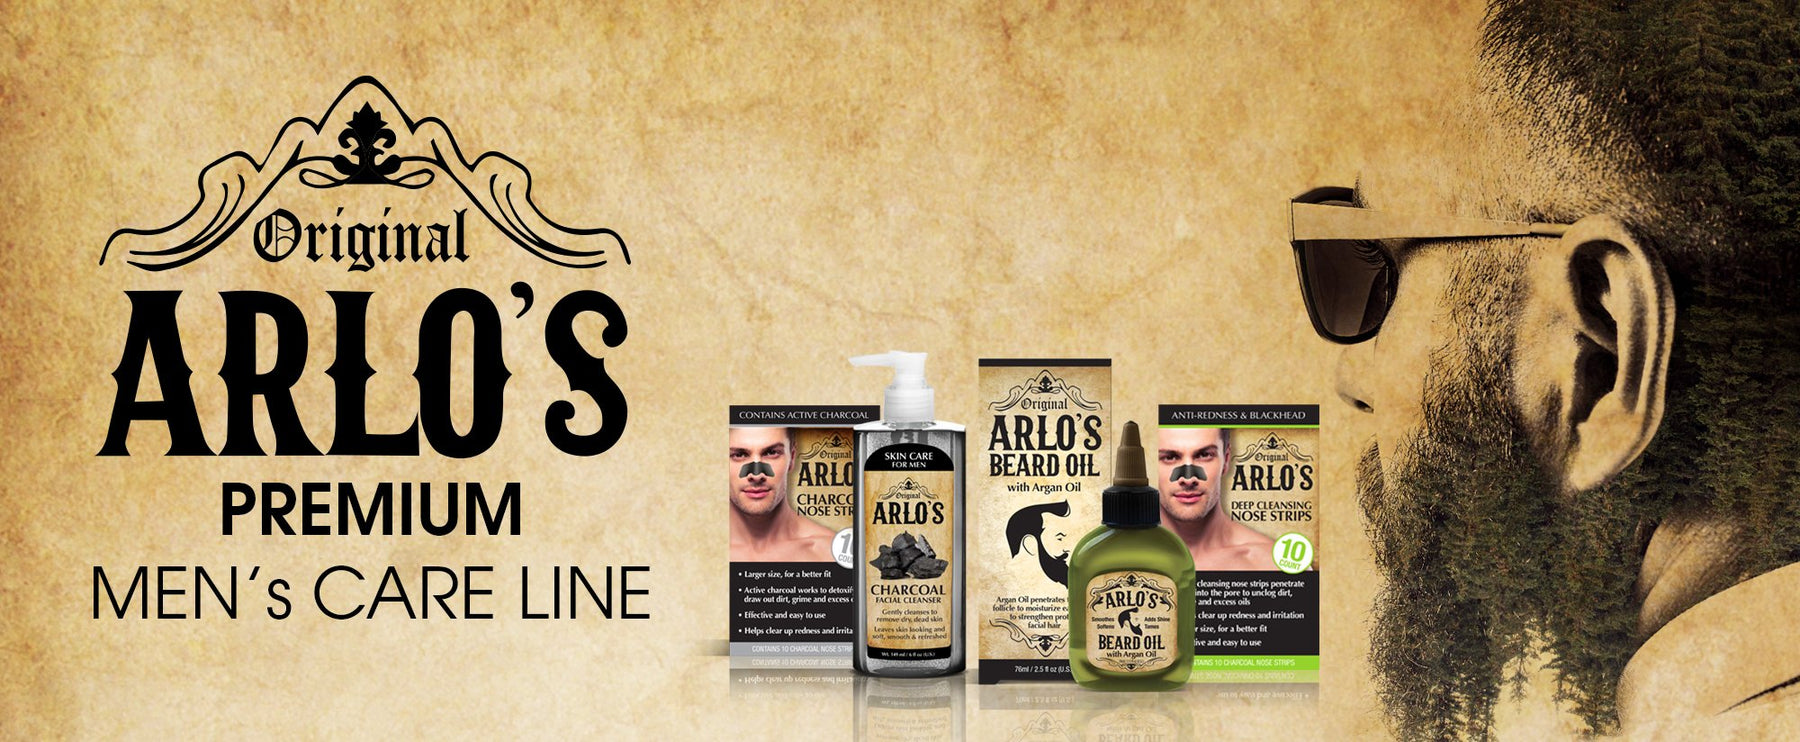 Arlo's Hair and Beard Oil with Castor Oil 8 oz.